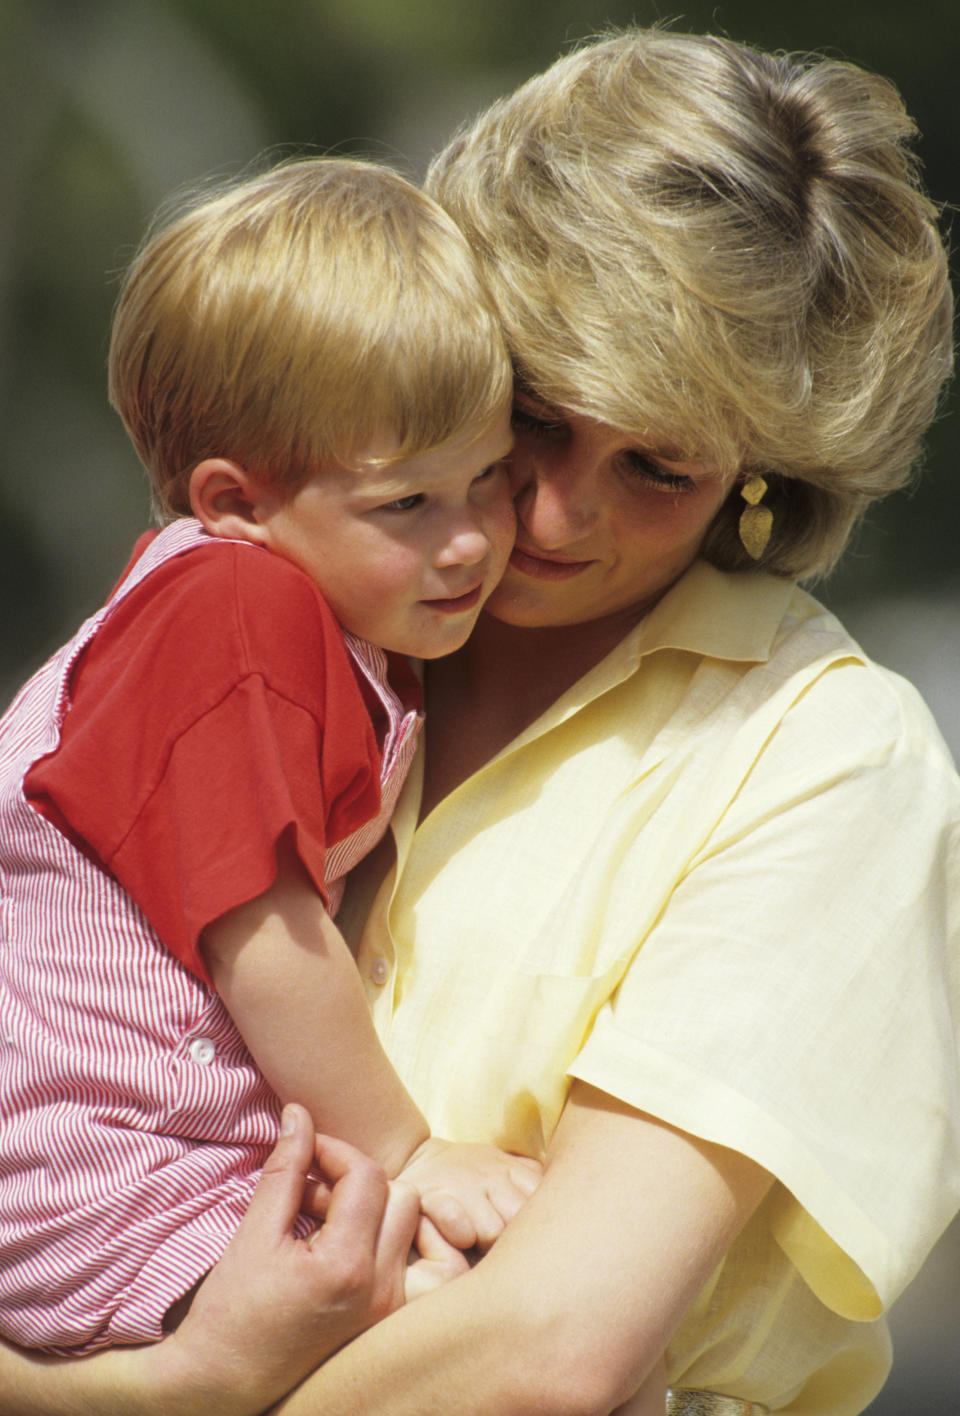 Prince Harry's mum was also stripped of her HRH title following divorce from Prince Charles [Image: Getty]